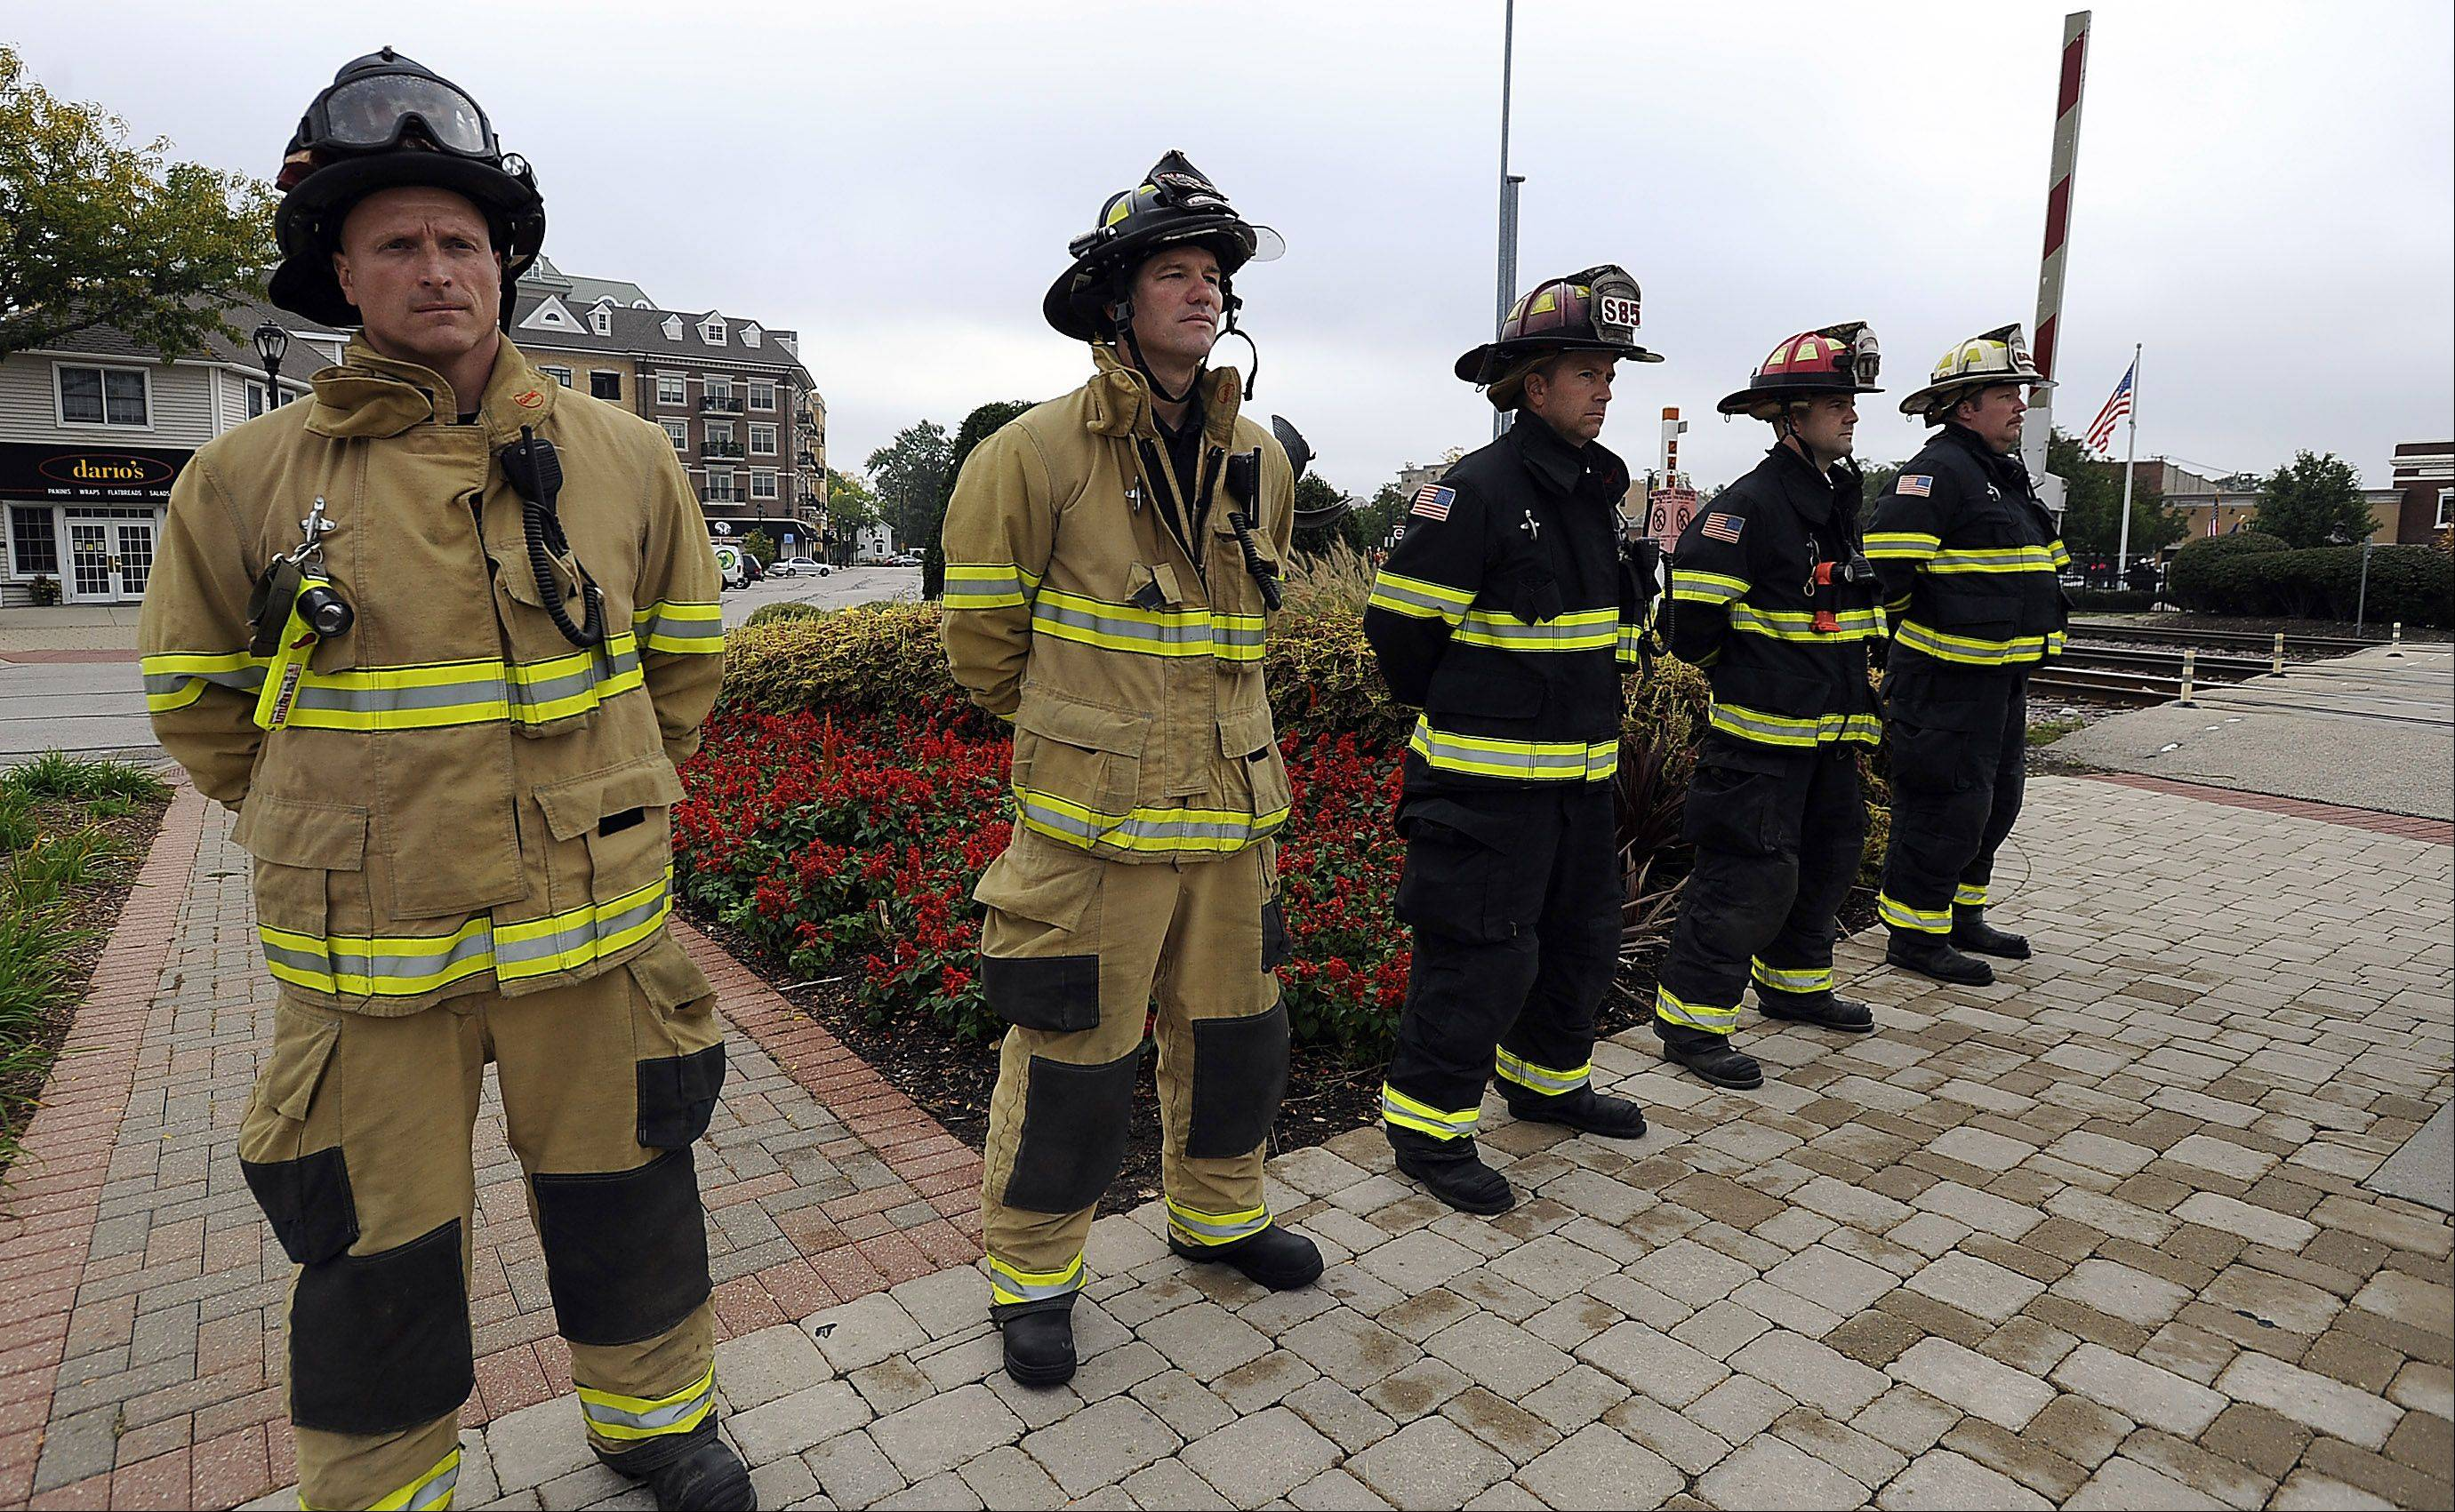 Palatine firefighters stand at attention near the railroad crossing in downtown Palatine during Tuesday morning's ceremony at the Firefighter's Memorial, honoring two volunteer firefighters who died in the line of duty on October 1, 1946 when their fire truck was hit by a Chicago and Northwestern Railroad passenger train.